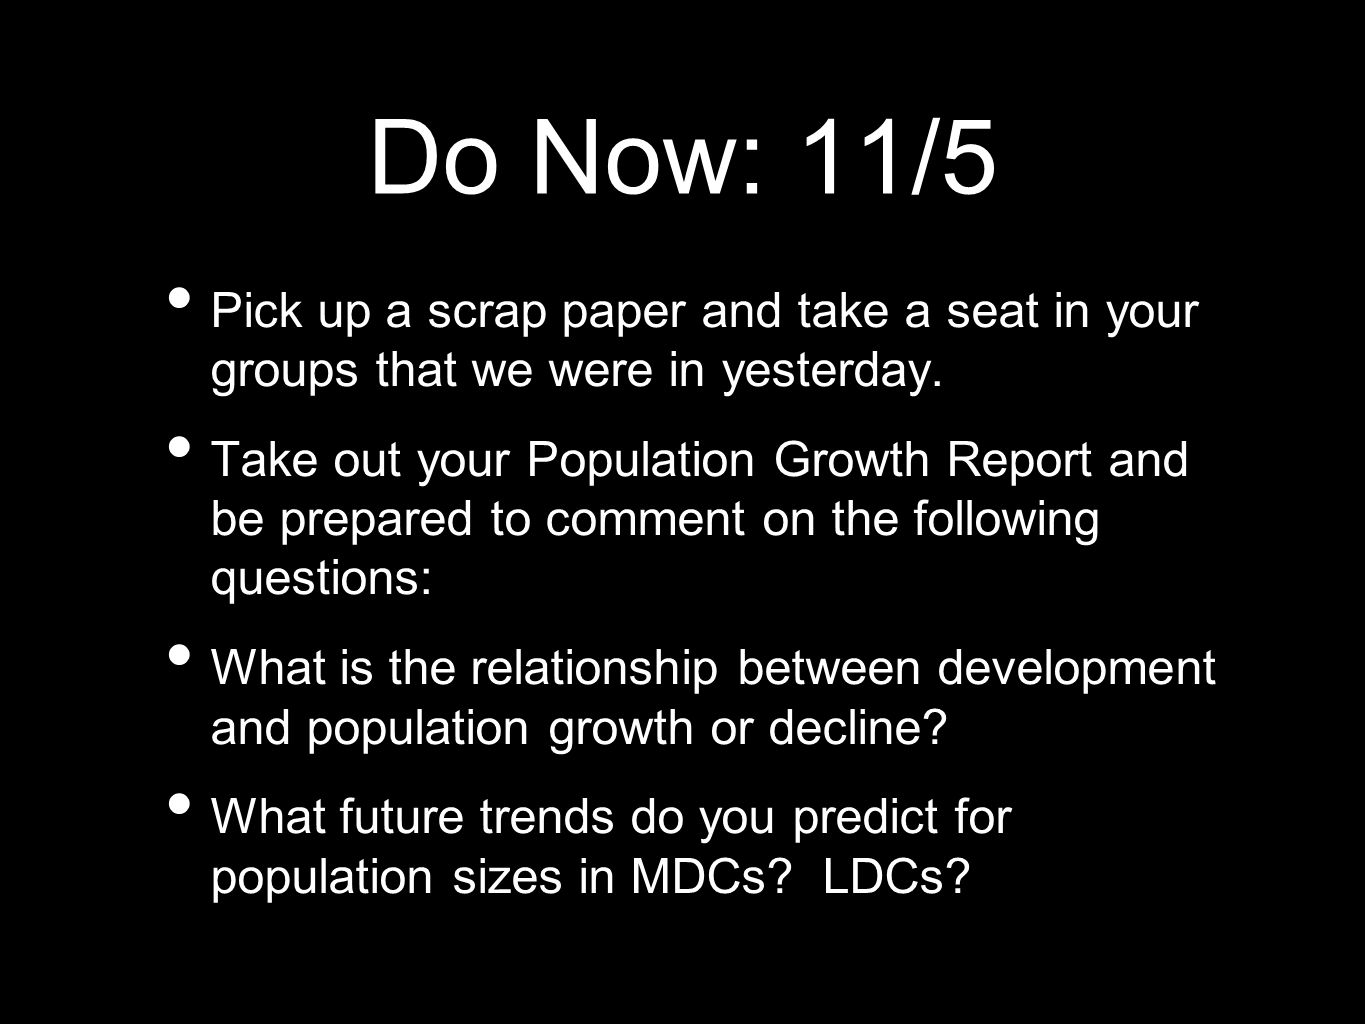 Do Now: 11/5 Pick up a scrap paper and take a seat in your groups that we were in yesterday. Take out your Population Growth Report and be prepared to